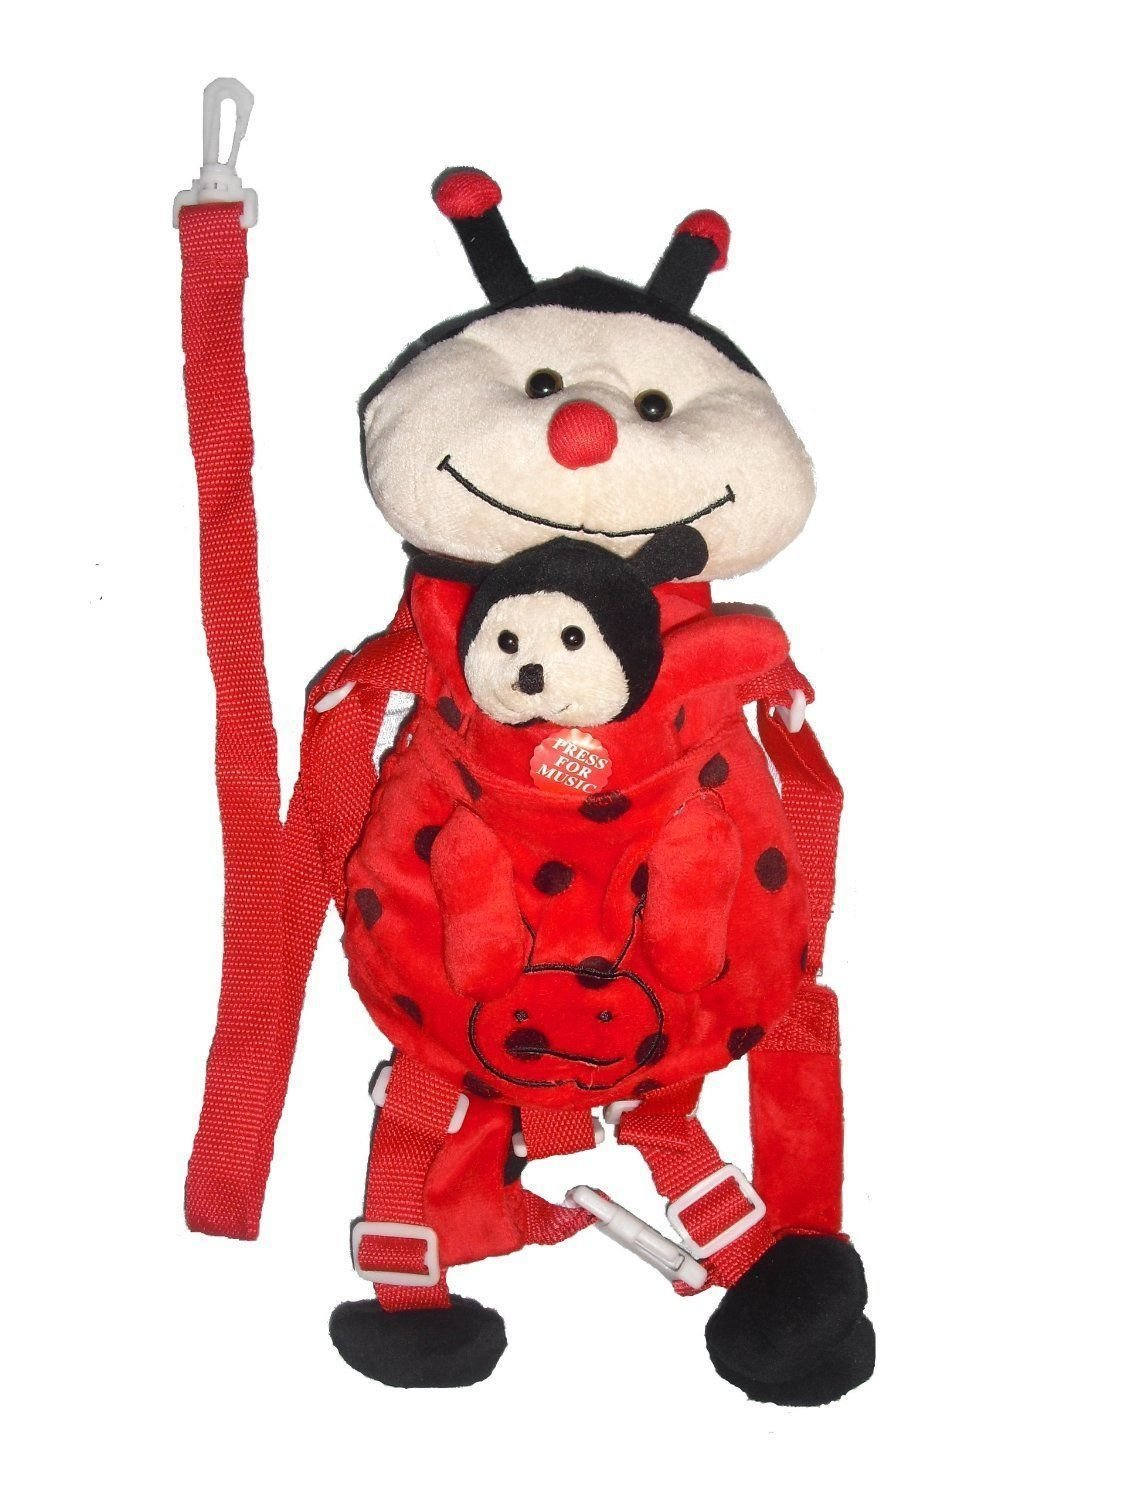 Ladybug Toddler Safety Harness Leash For Kids with Small Backpack